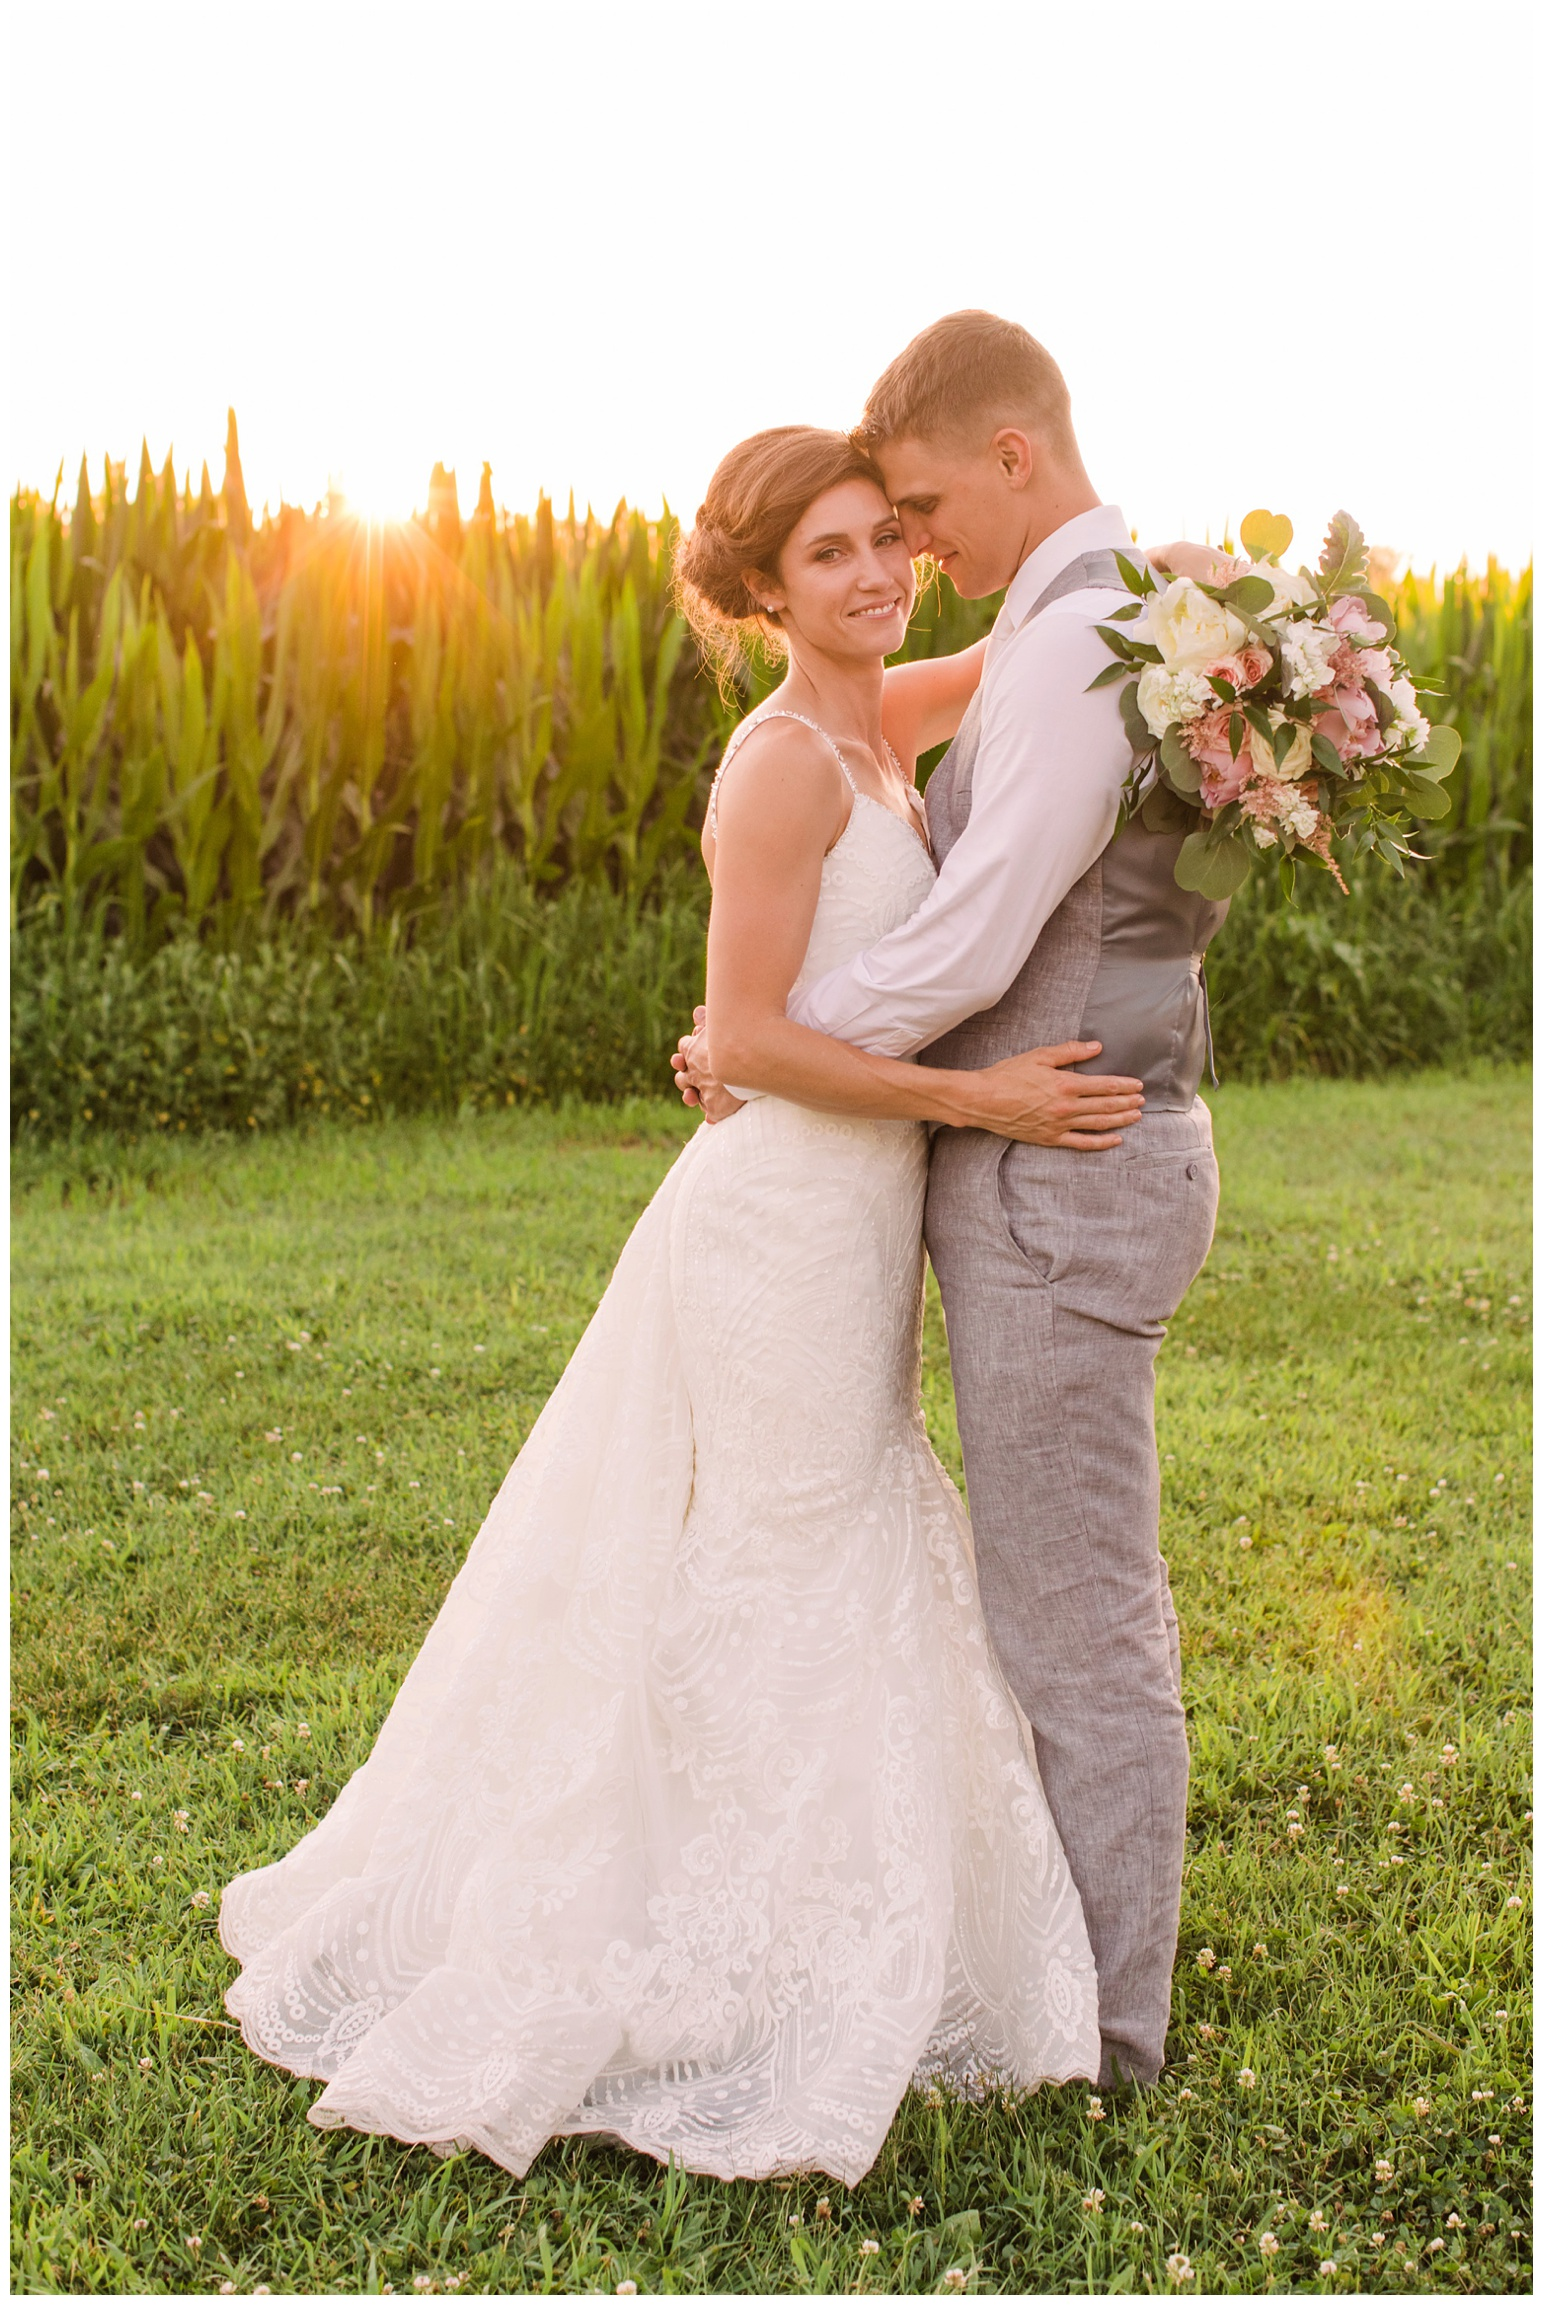 summer wedding at worsell manor - warwick md - now featured on My Eastern Shore Wedding - coastal - sea - nautical - eastern shore - inspired wedding ideas and inspo - photo of bride and groom outdoors at sunset - golden hour - in front of corn field